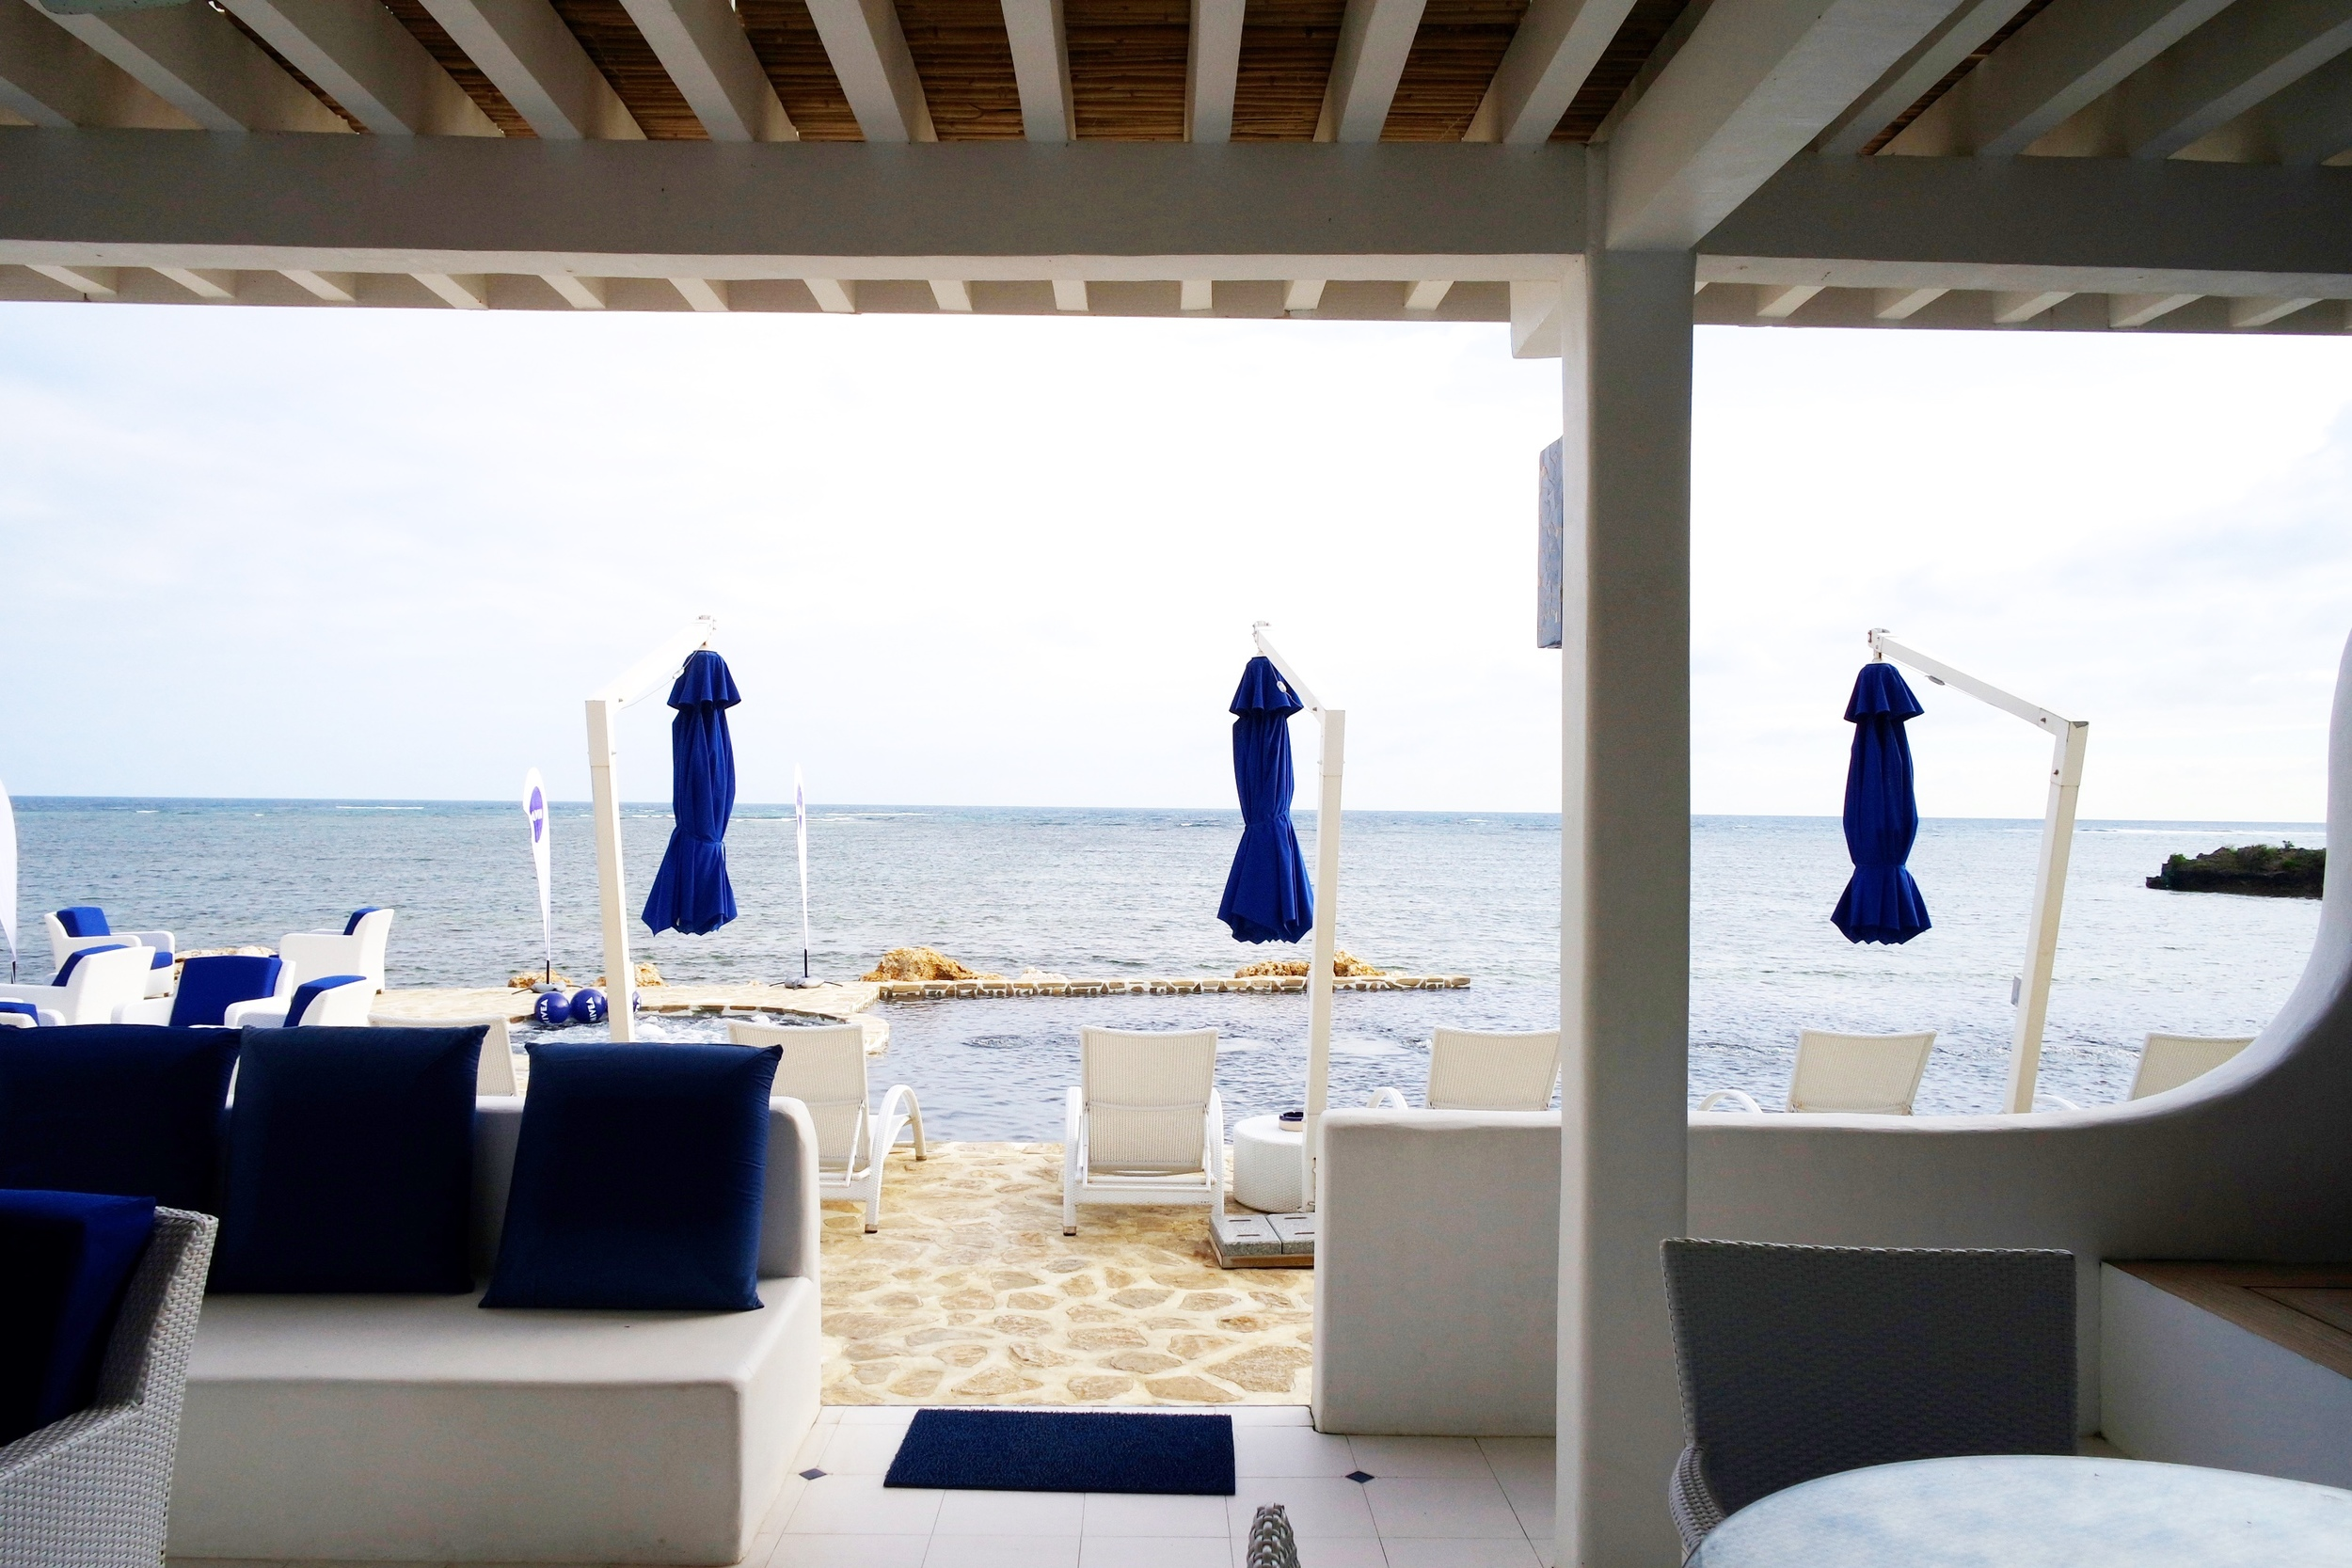 ...with a view of the pool and the endless sea.